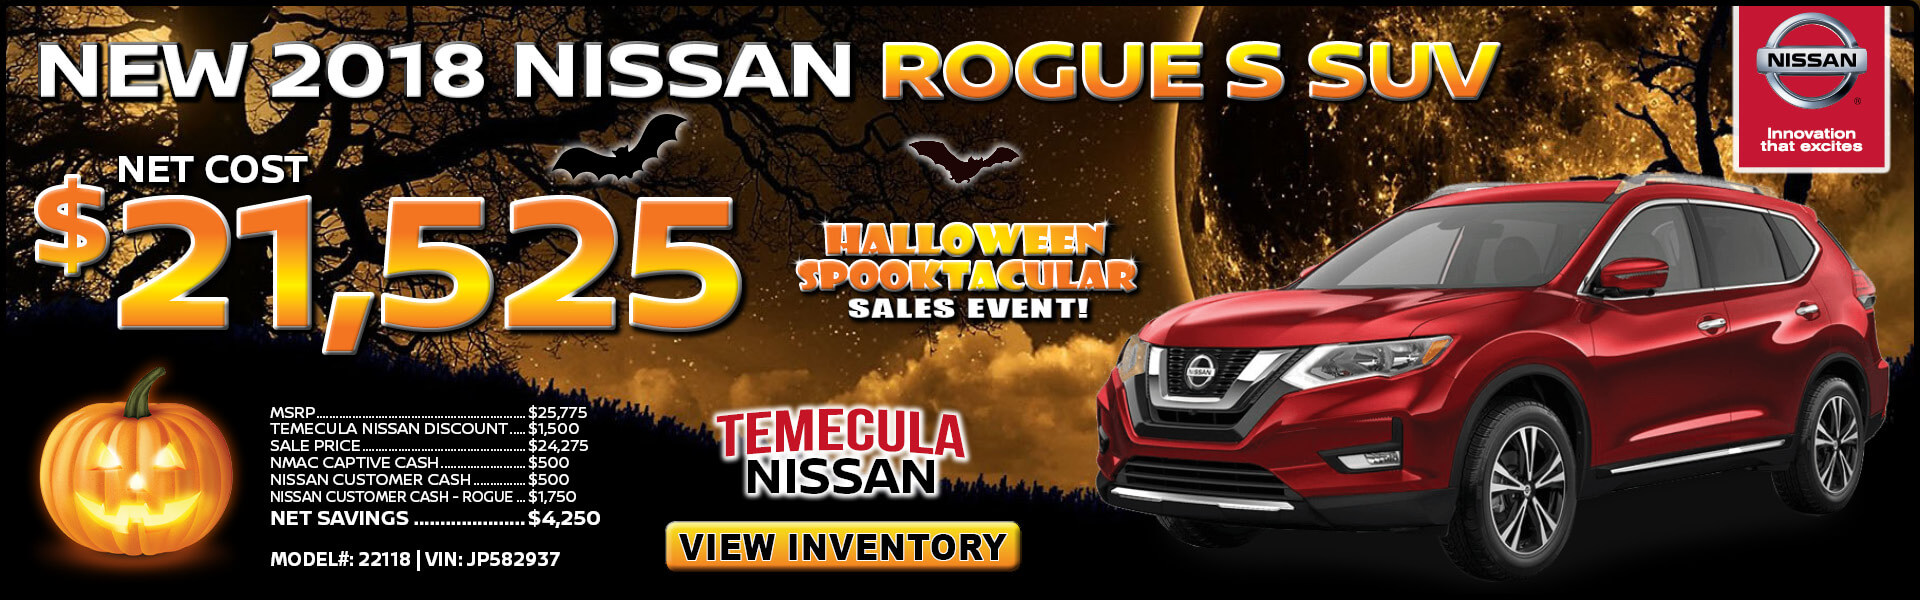 Nissan Rogue $21,525 Purchase